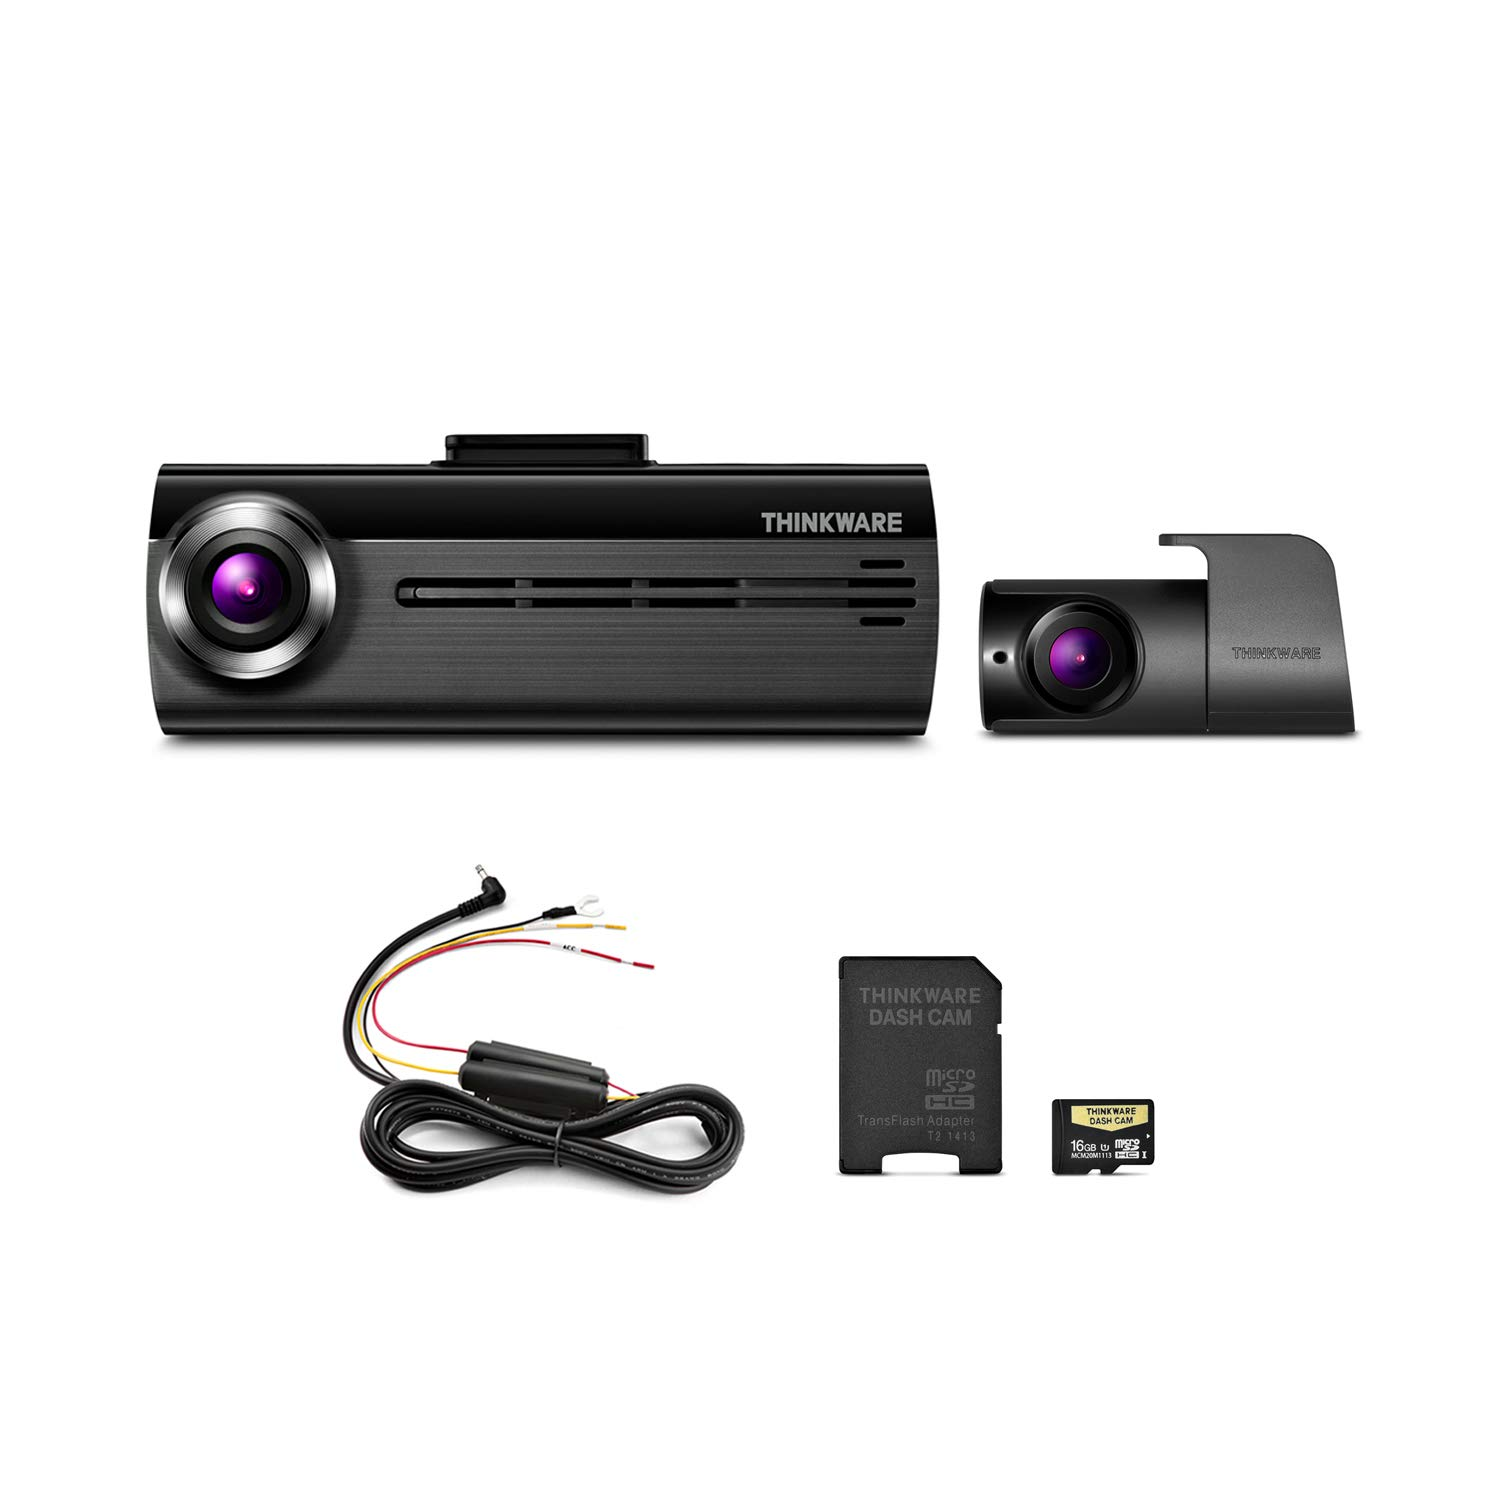 THINKWARE FA200 Dash Cam Bundle with Front & Rear Cam, Hardwiring Cable, 16GB MicroSD Card Included, Built-in WiFi